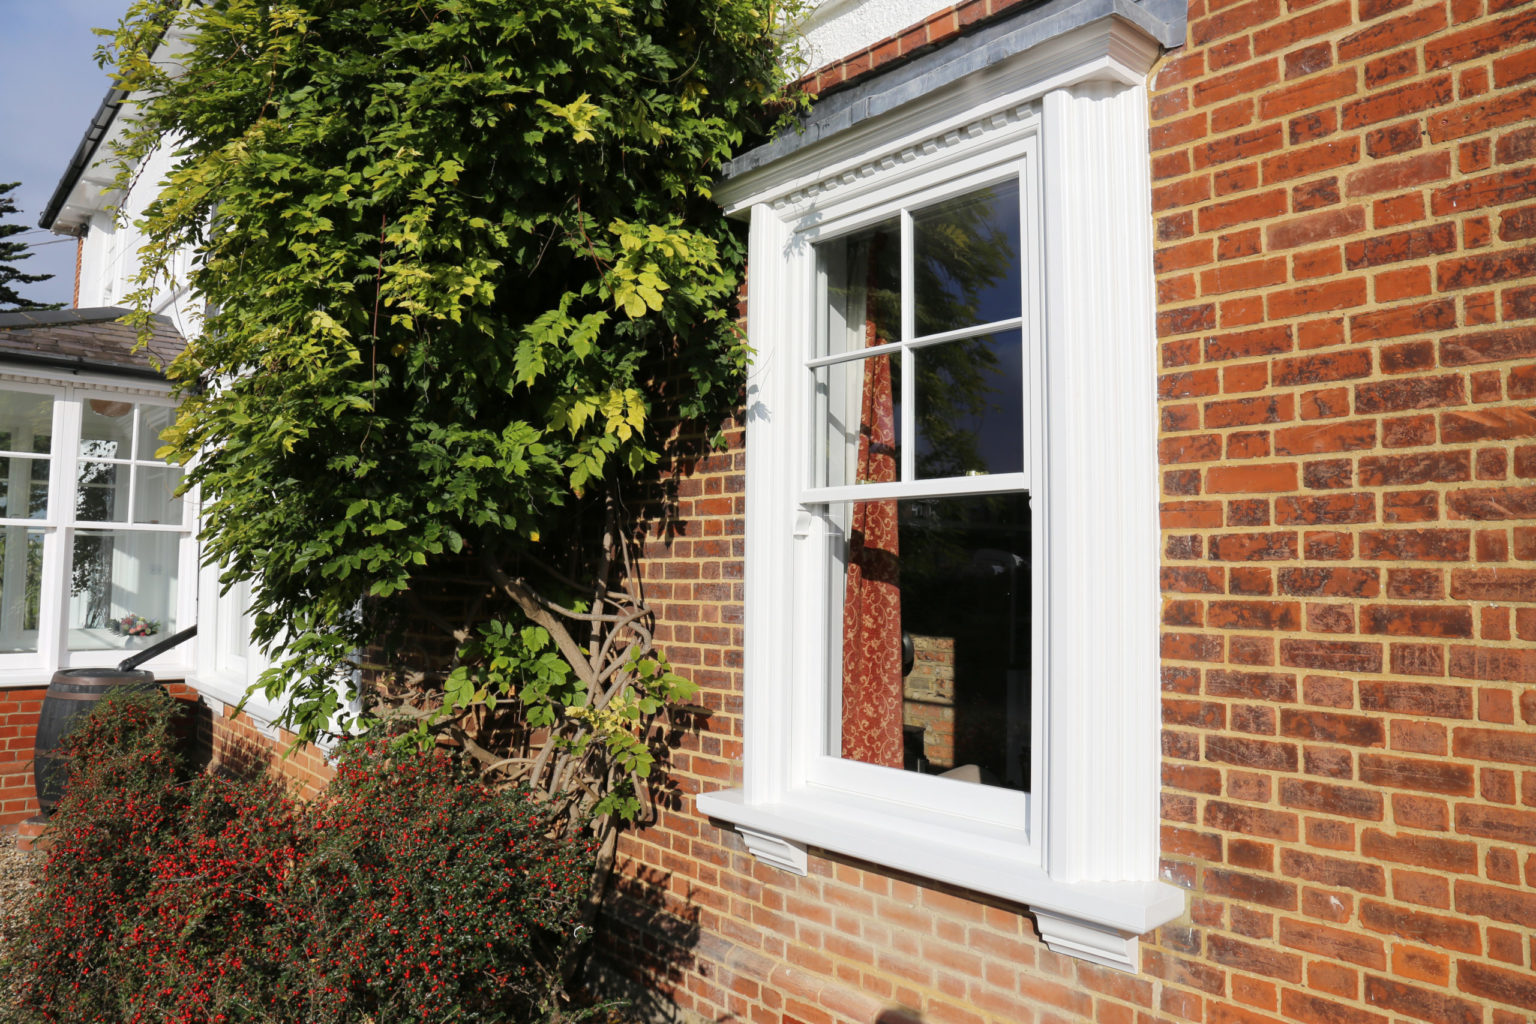 uPVC vs Timber Windows: what's the right choice for me?